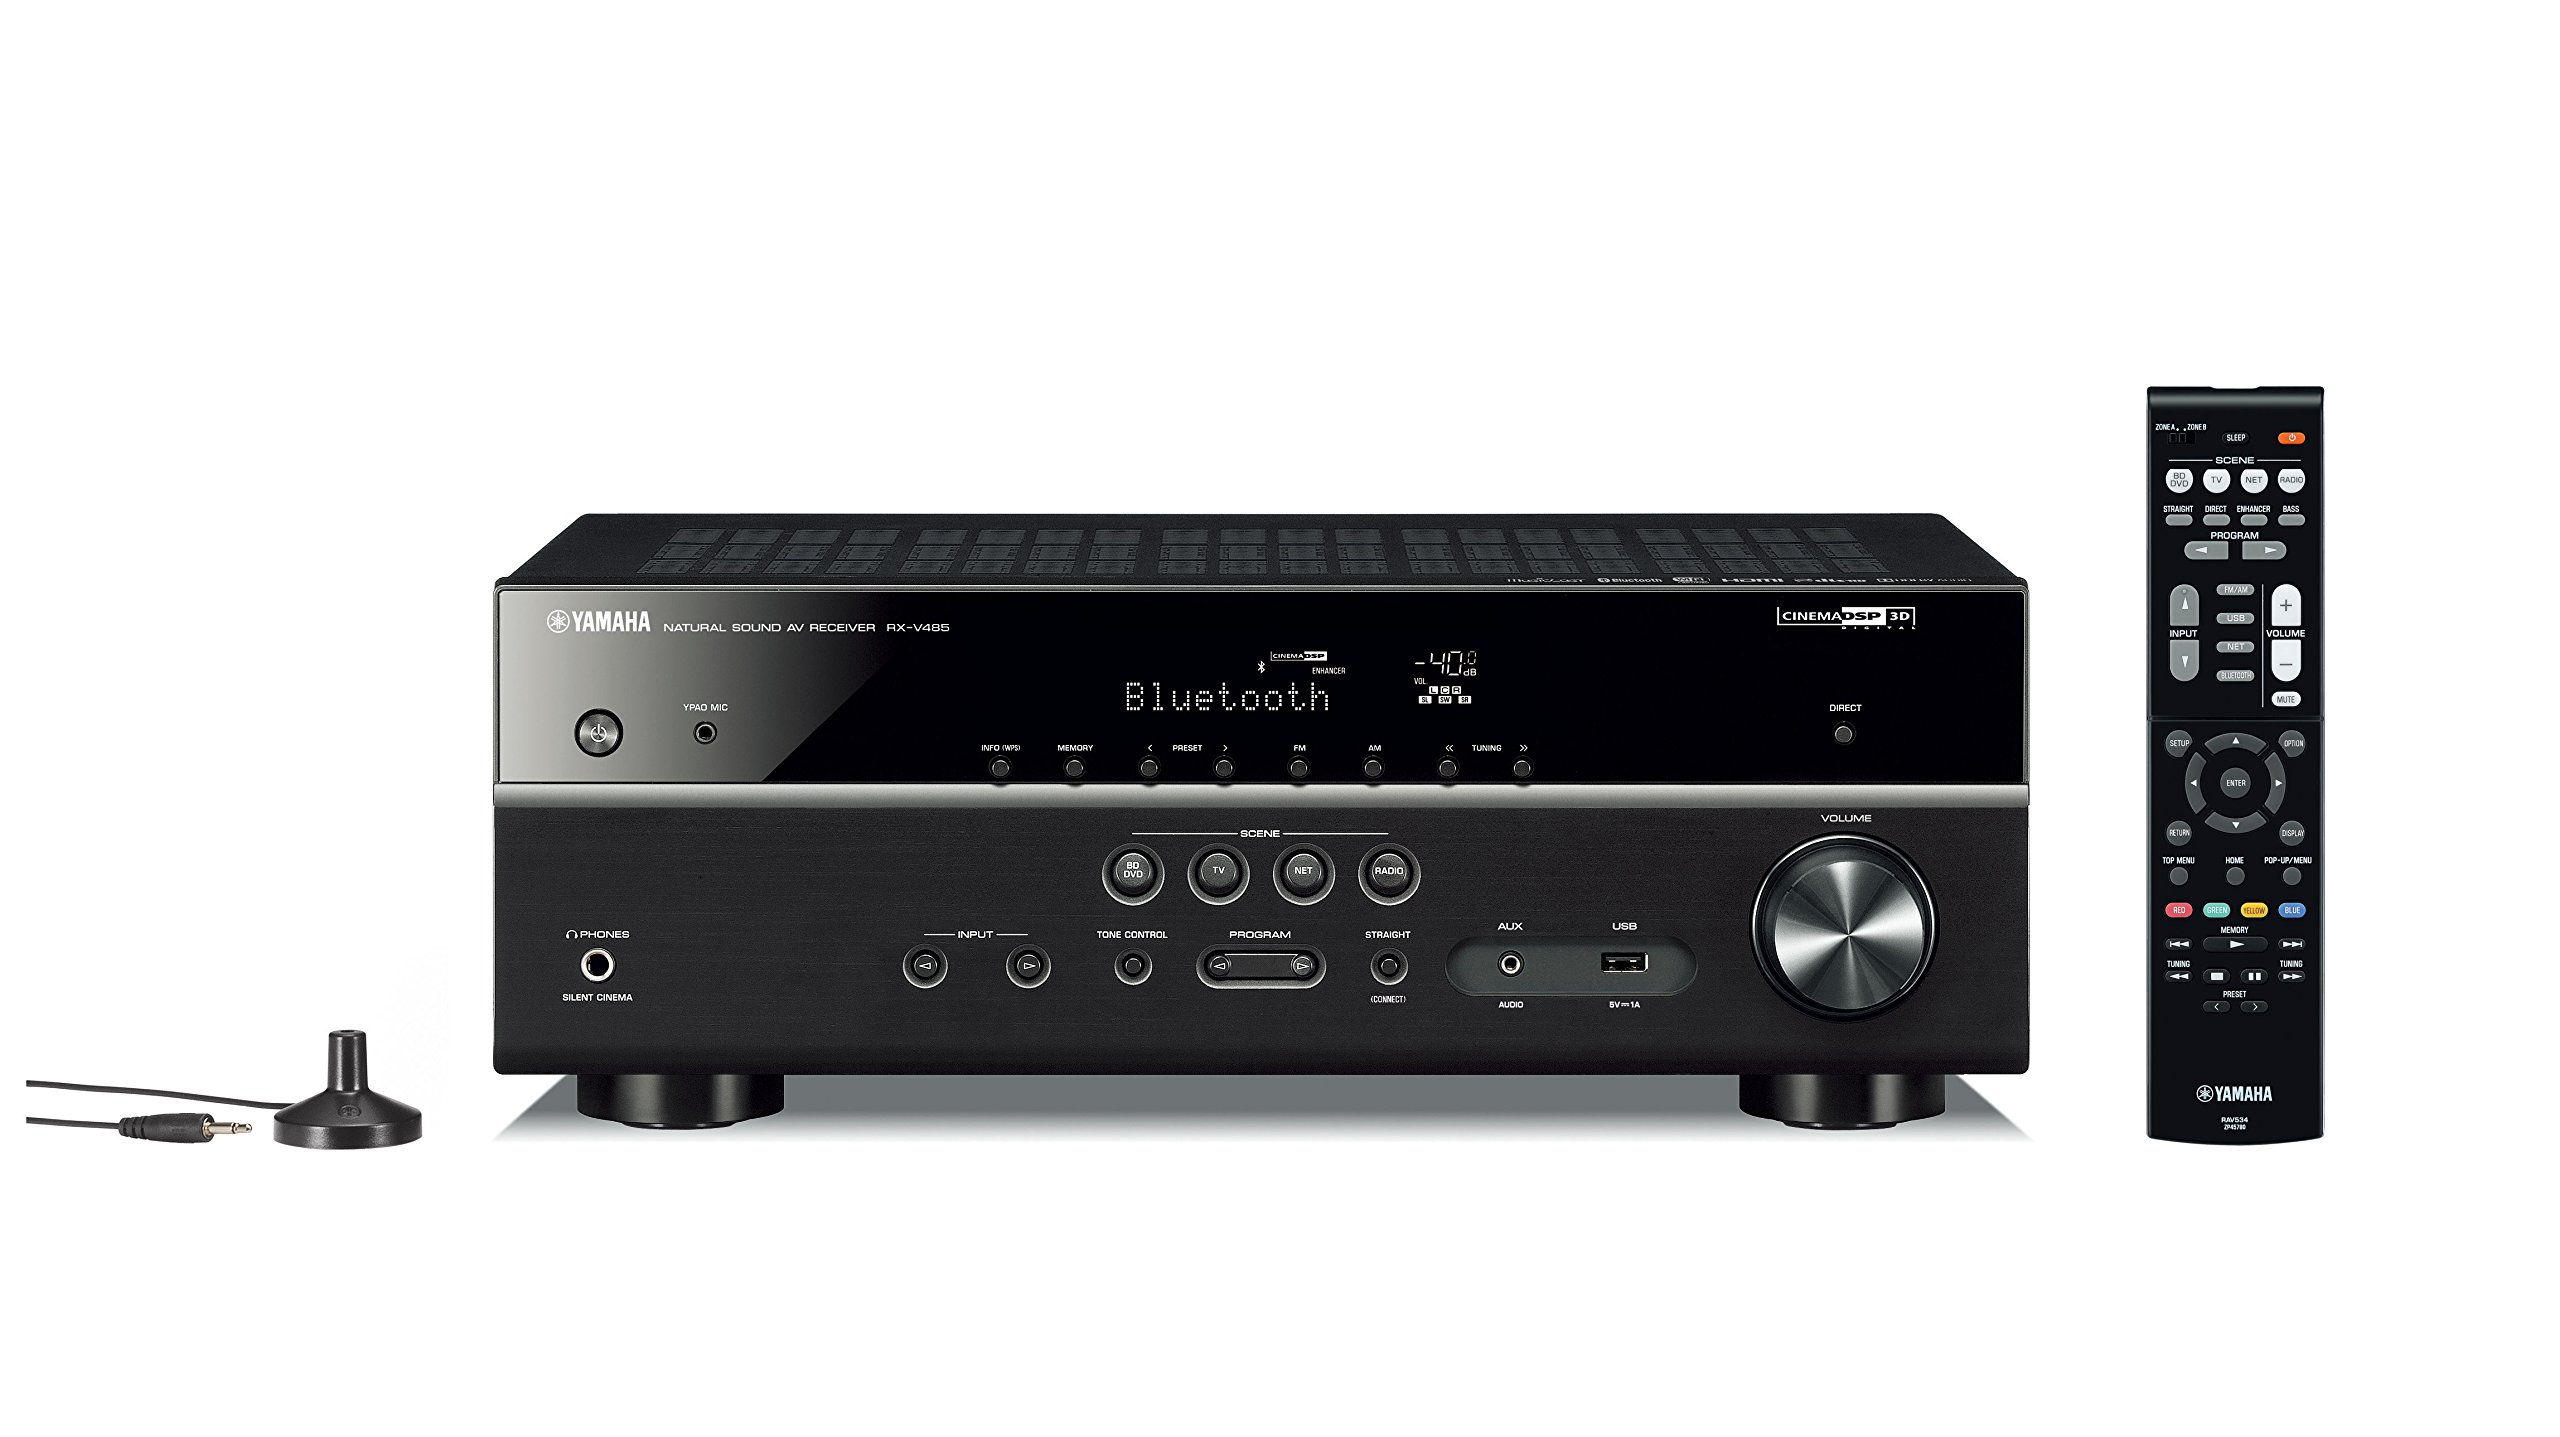 71IfxZIH2LL - Yamaha RX-V485 – Alexa compatible MusicCast AV receiver with Wi-Fi and Bluetooth – 5.1 Cinema Surround Sound – Black